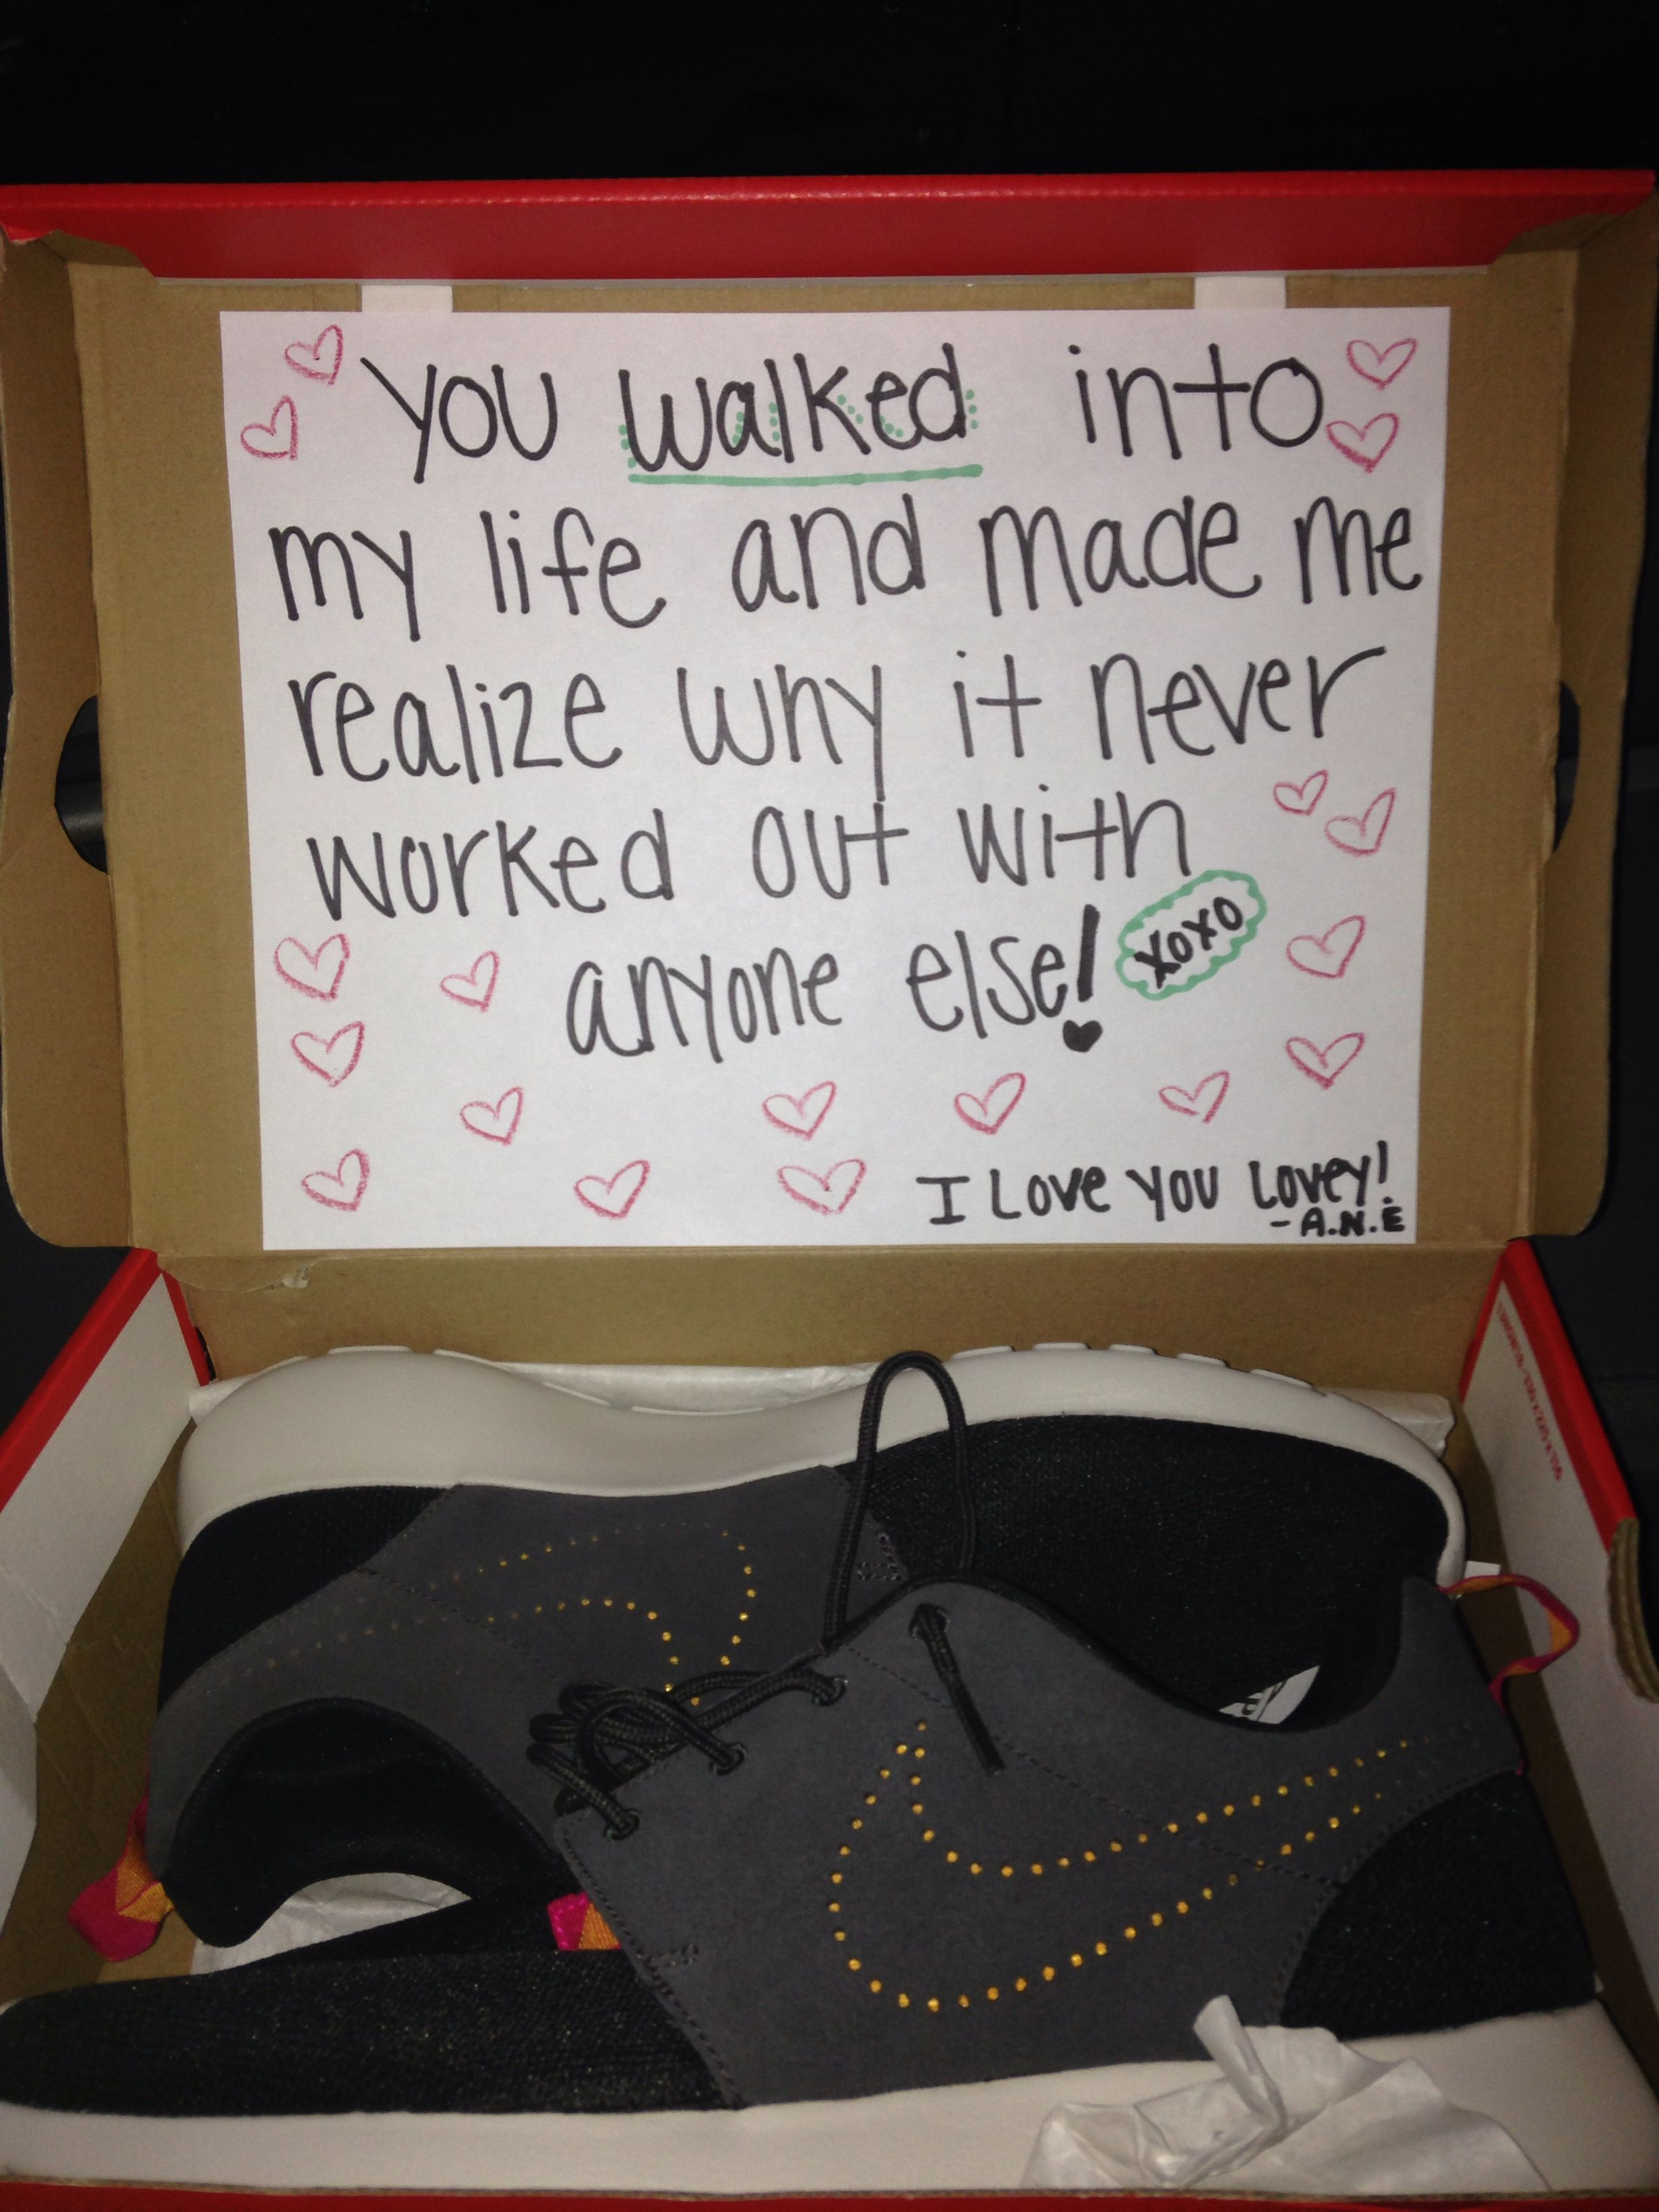 Ideas for christmas gifts for boyfriend - Got My Boyfriend Shoes For Christmas And I Think This Is A Really Cute Way